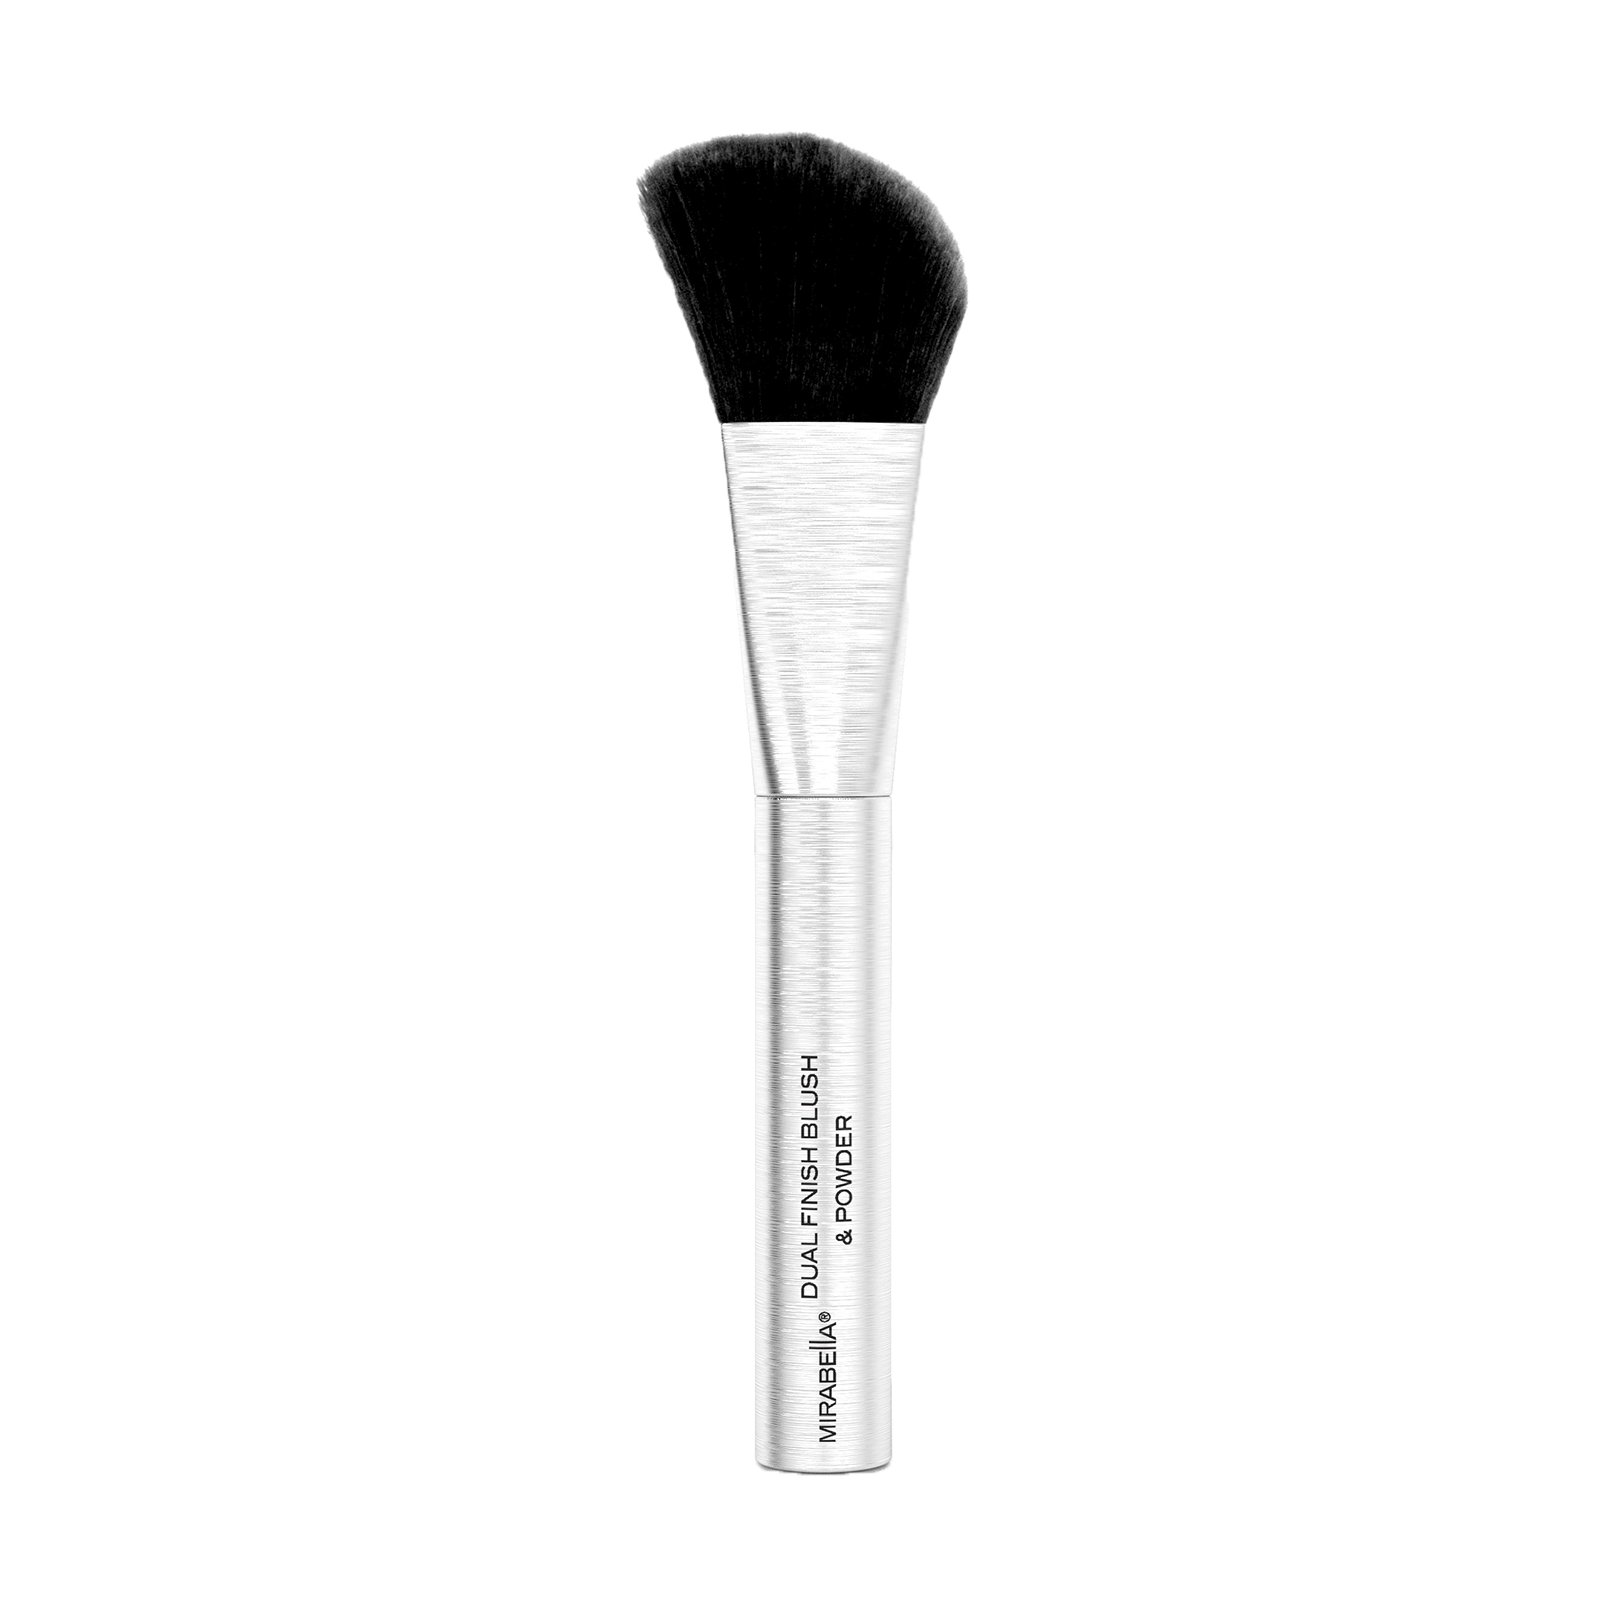 Dual Finish Blush & Powder Brush